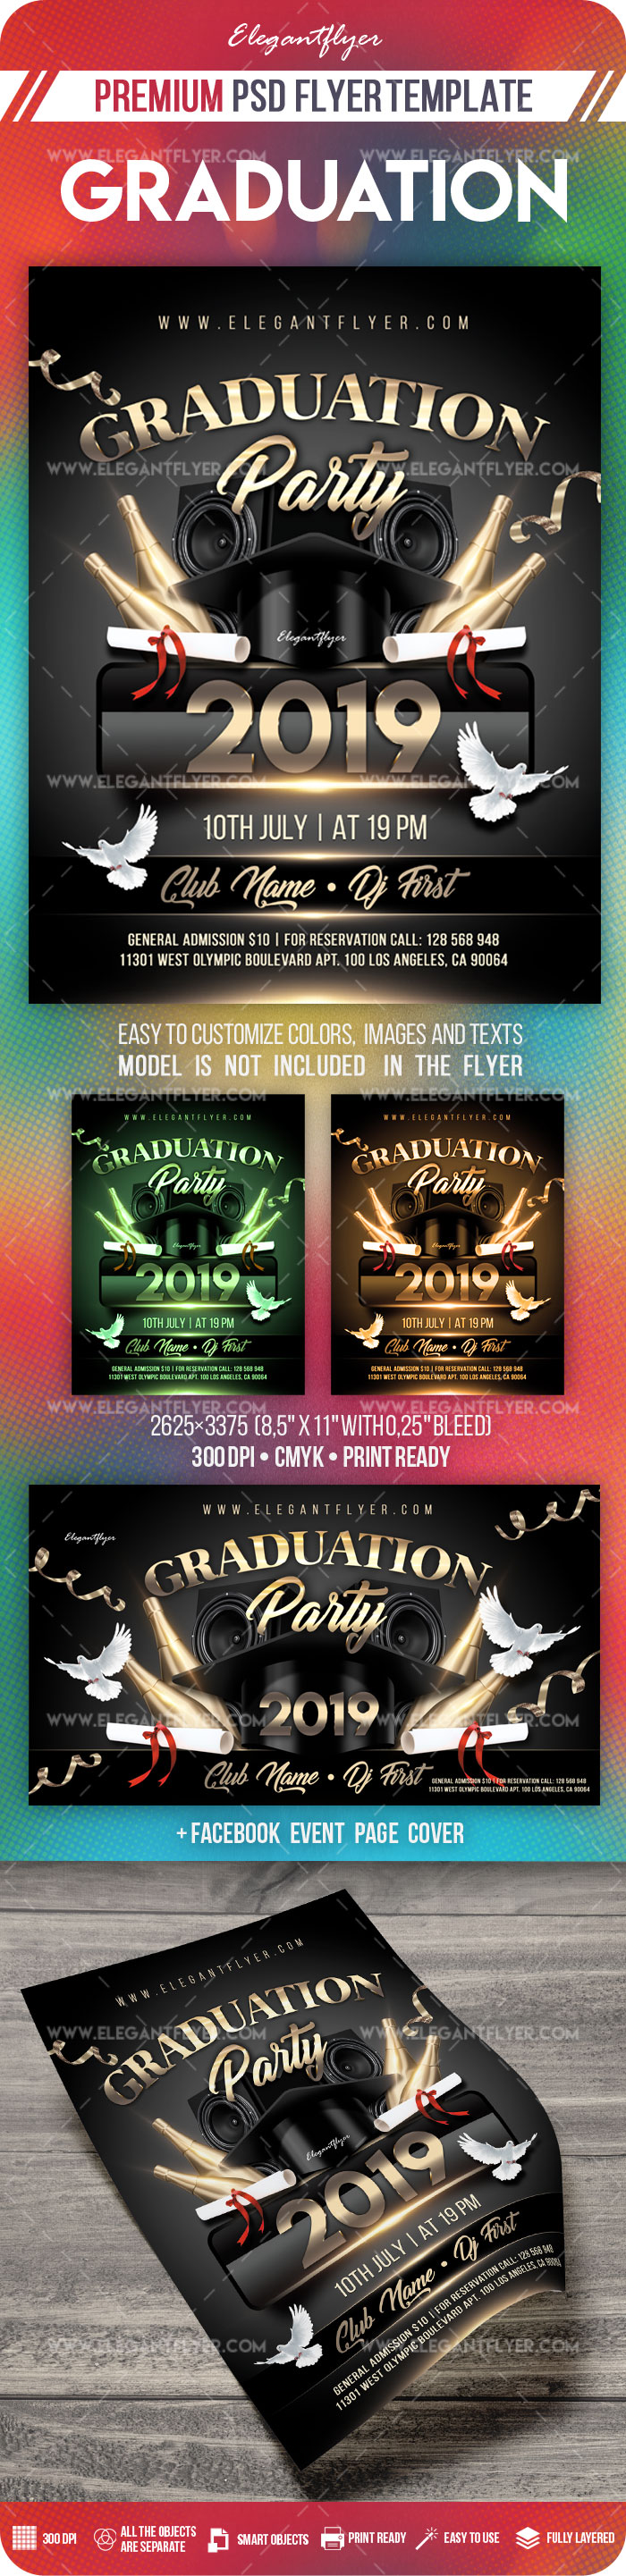 graduation party  u2013 flyer psd template  u2013 by elegantflyer